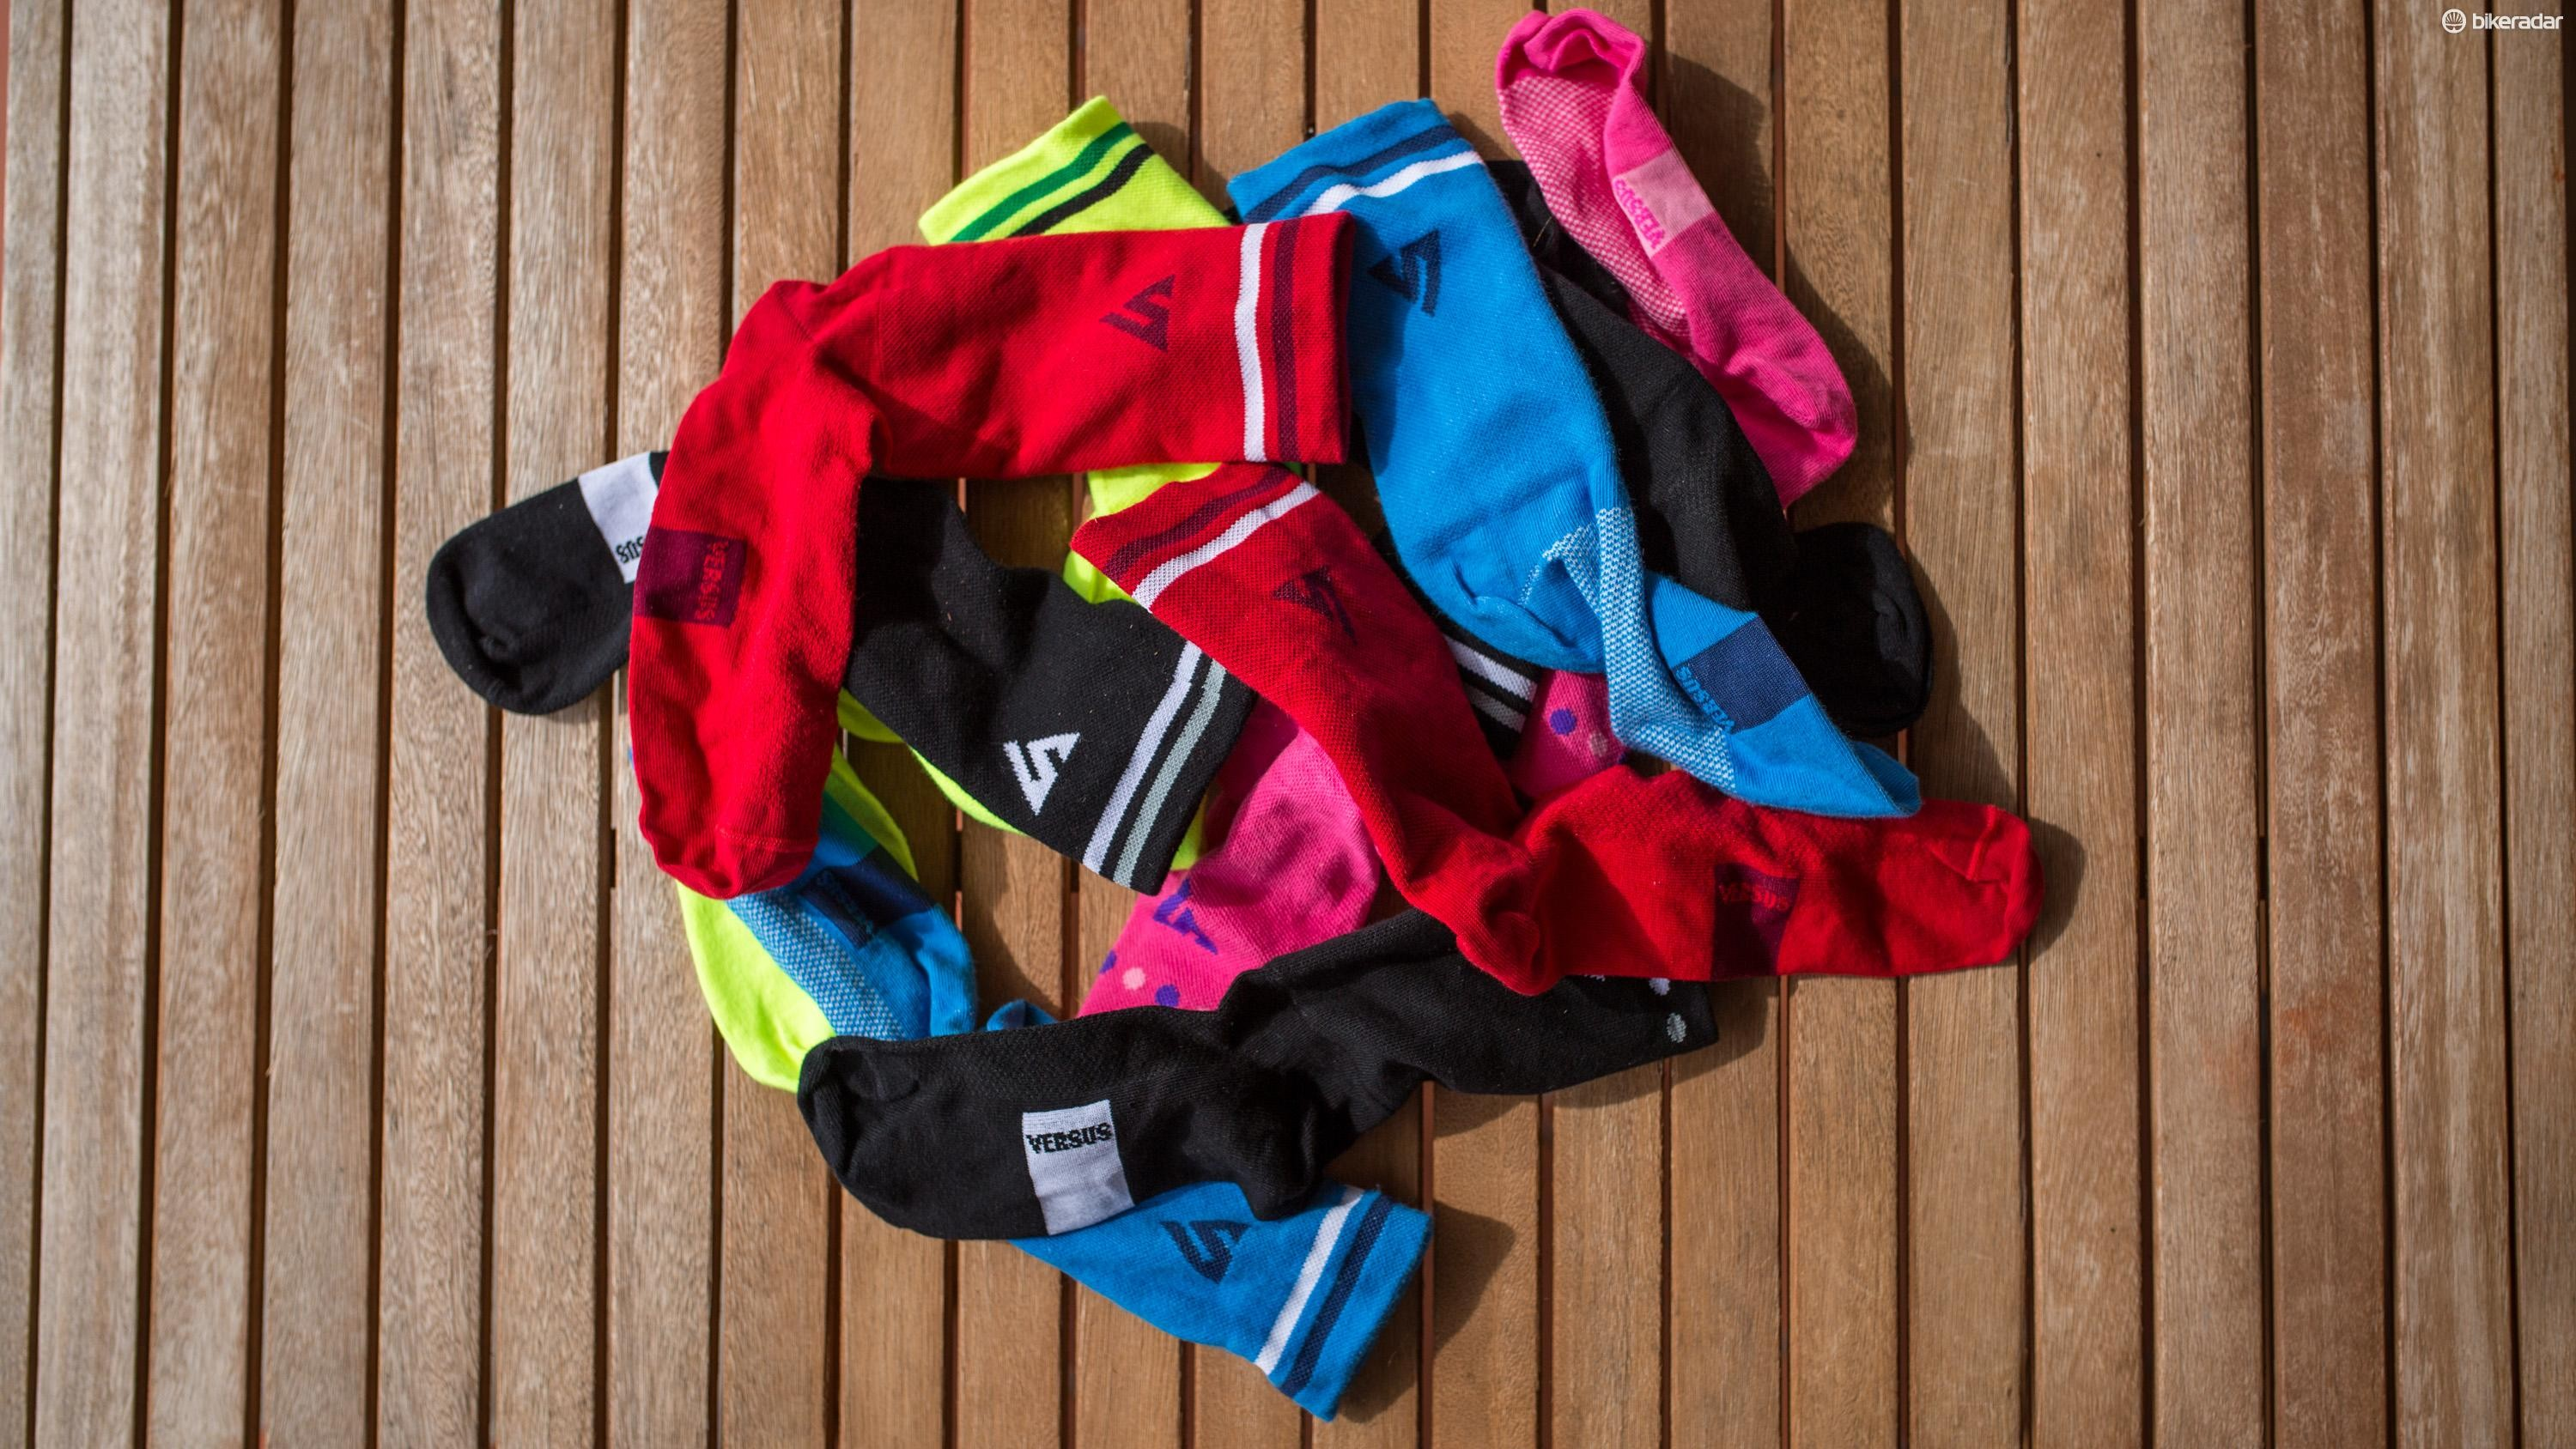 Versus Race socks are lightweight, comfy and most of all, tall